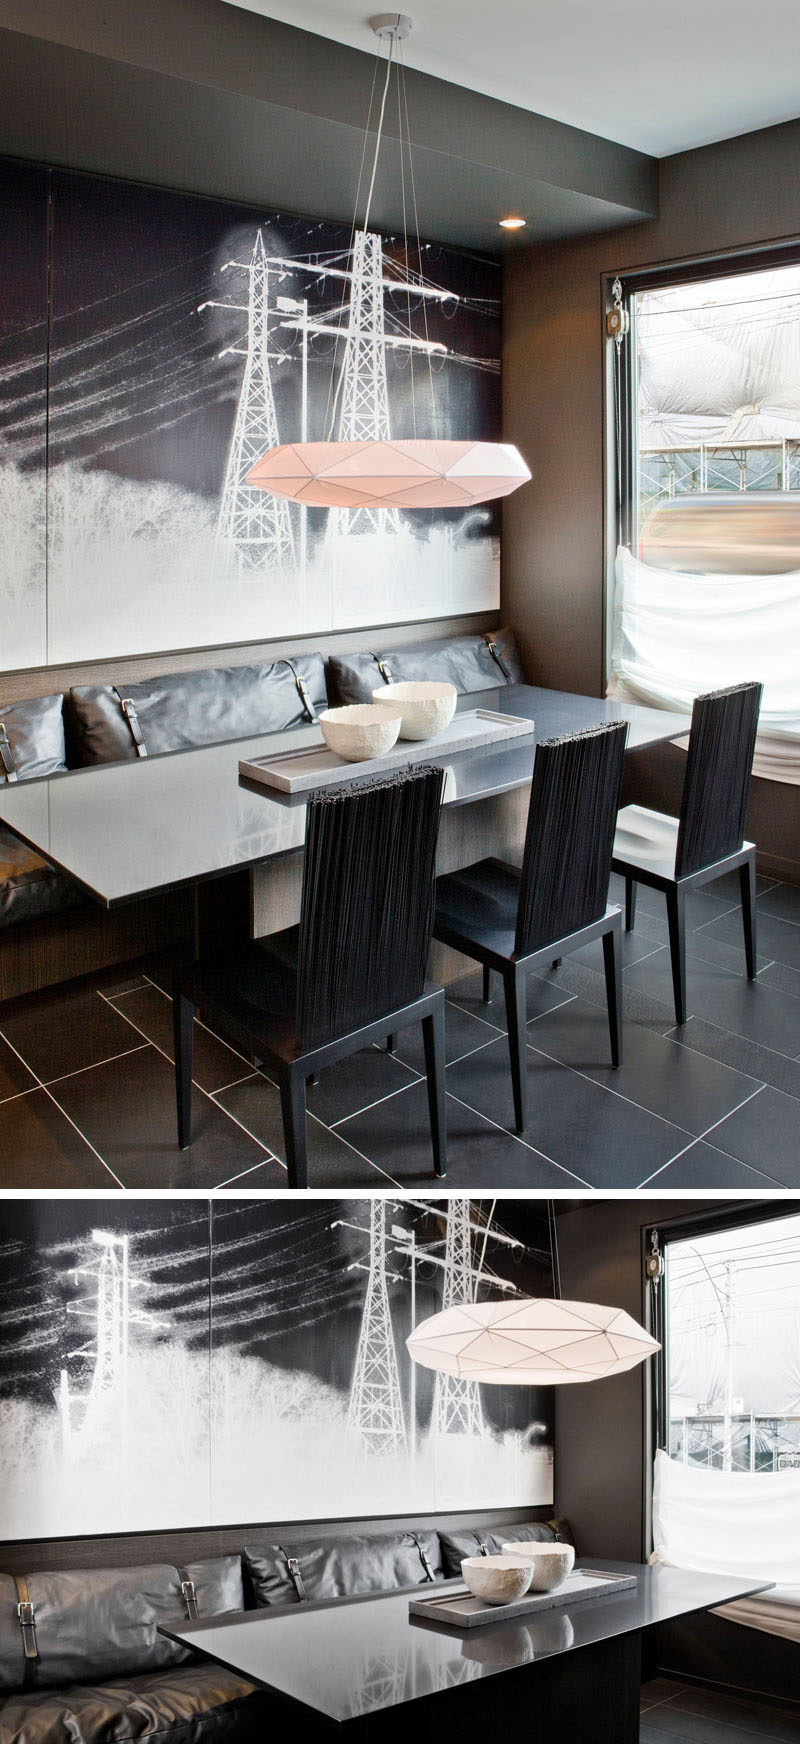 Dining Room Design Ideas - Use Built-In Banquette Seating To Save Space // The dark built-in dining area in this home is made especially unique by the leather cushions on the banquette and the dining chairs with bristle-like backs.